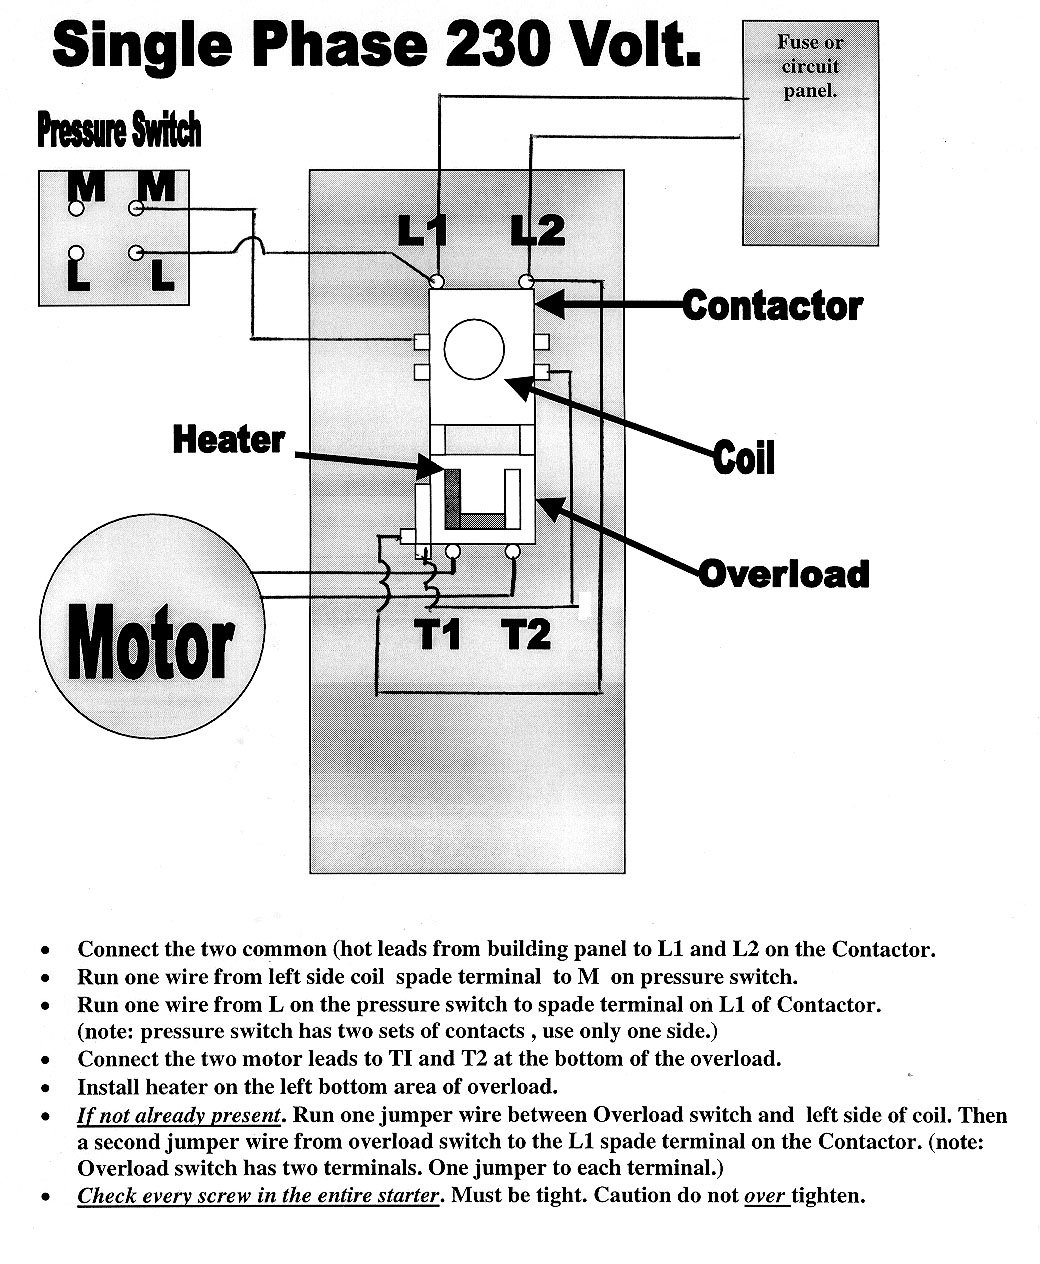 hight resolution of click here to view print single phase wiring diagrams